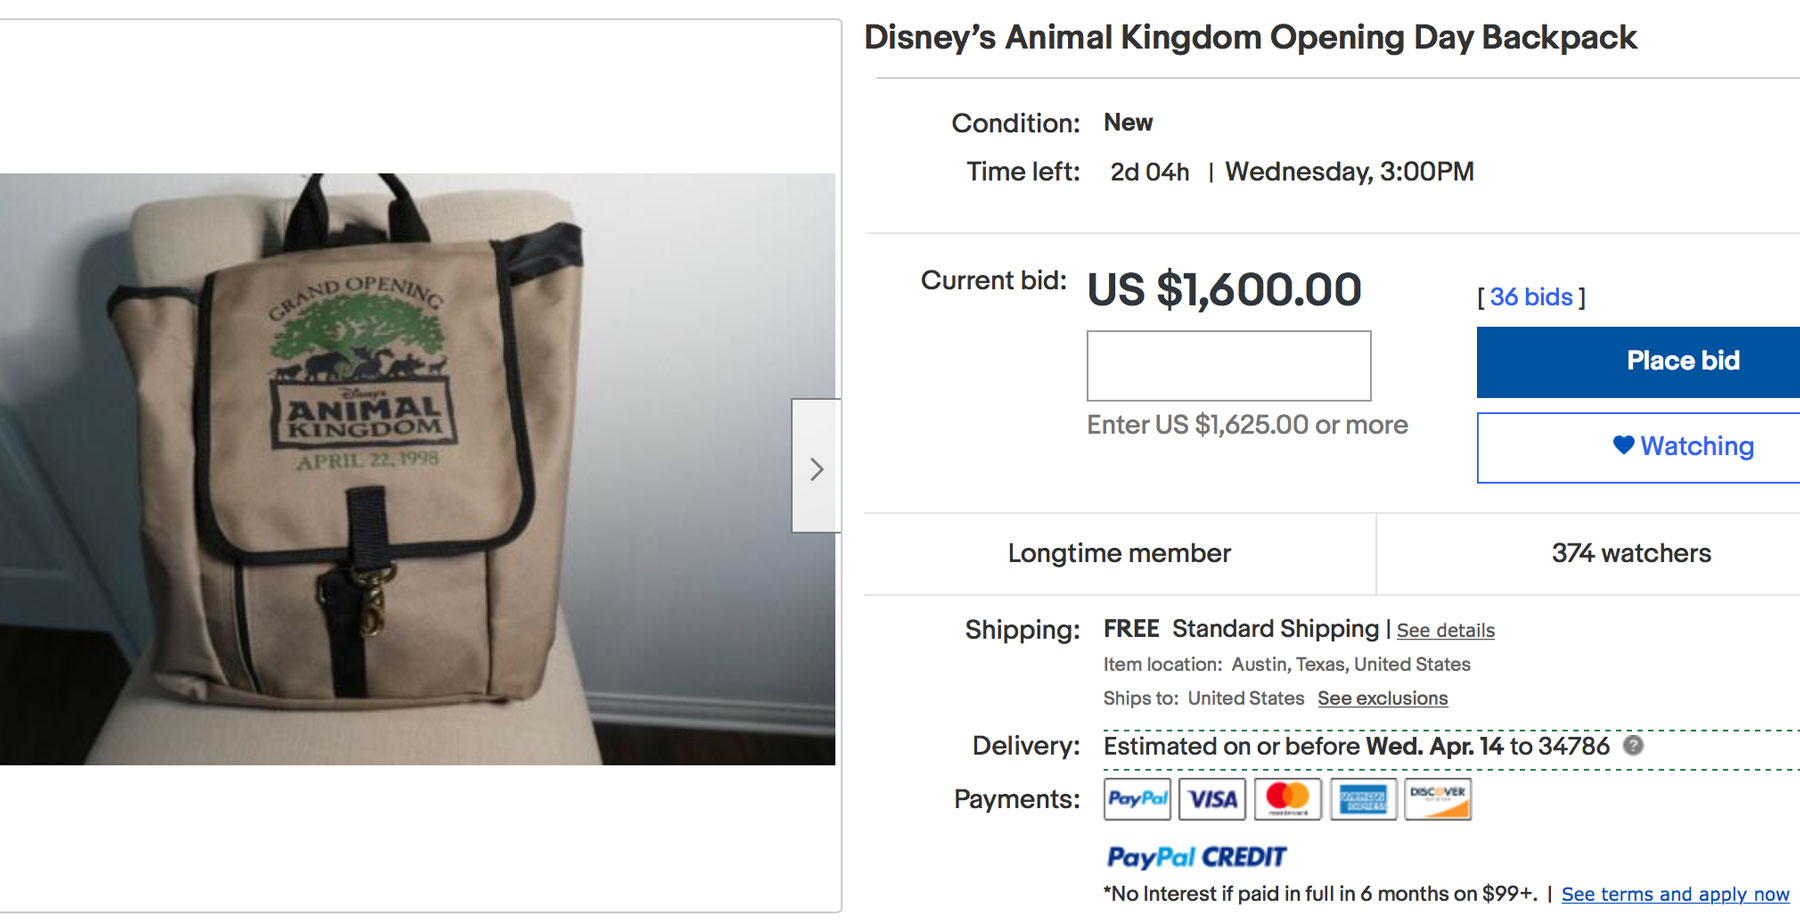 Ebay listing for one of Joe Rohde's high value items from his career.